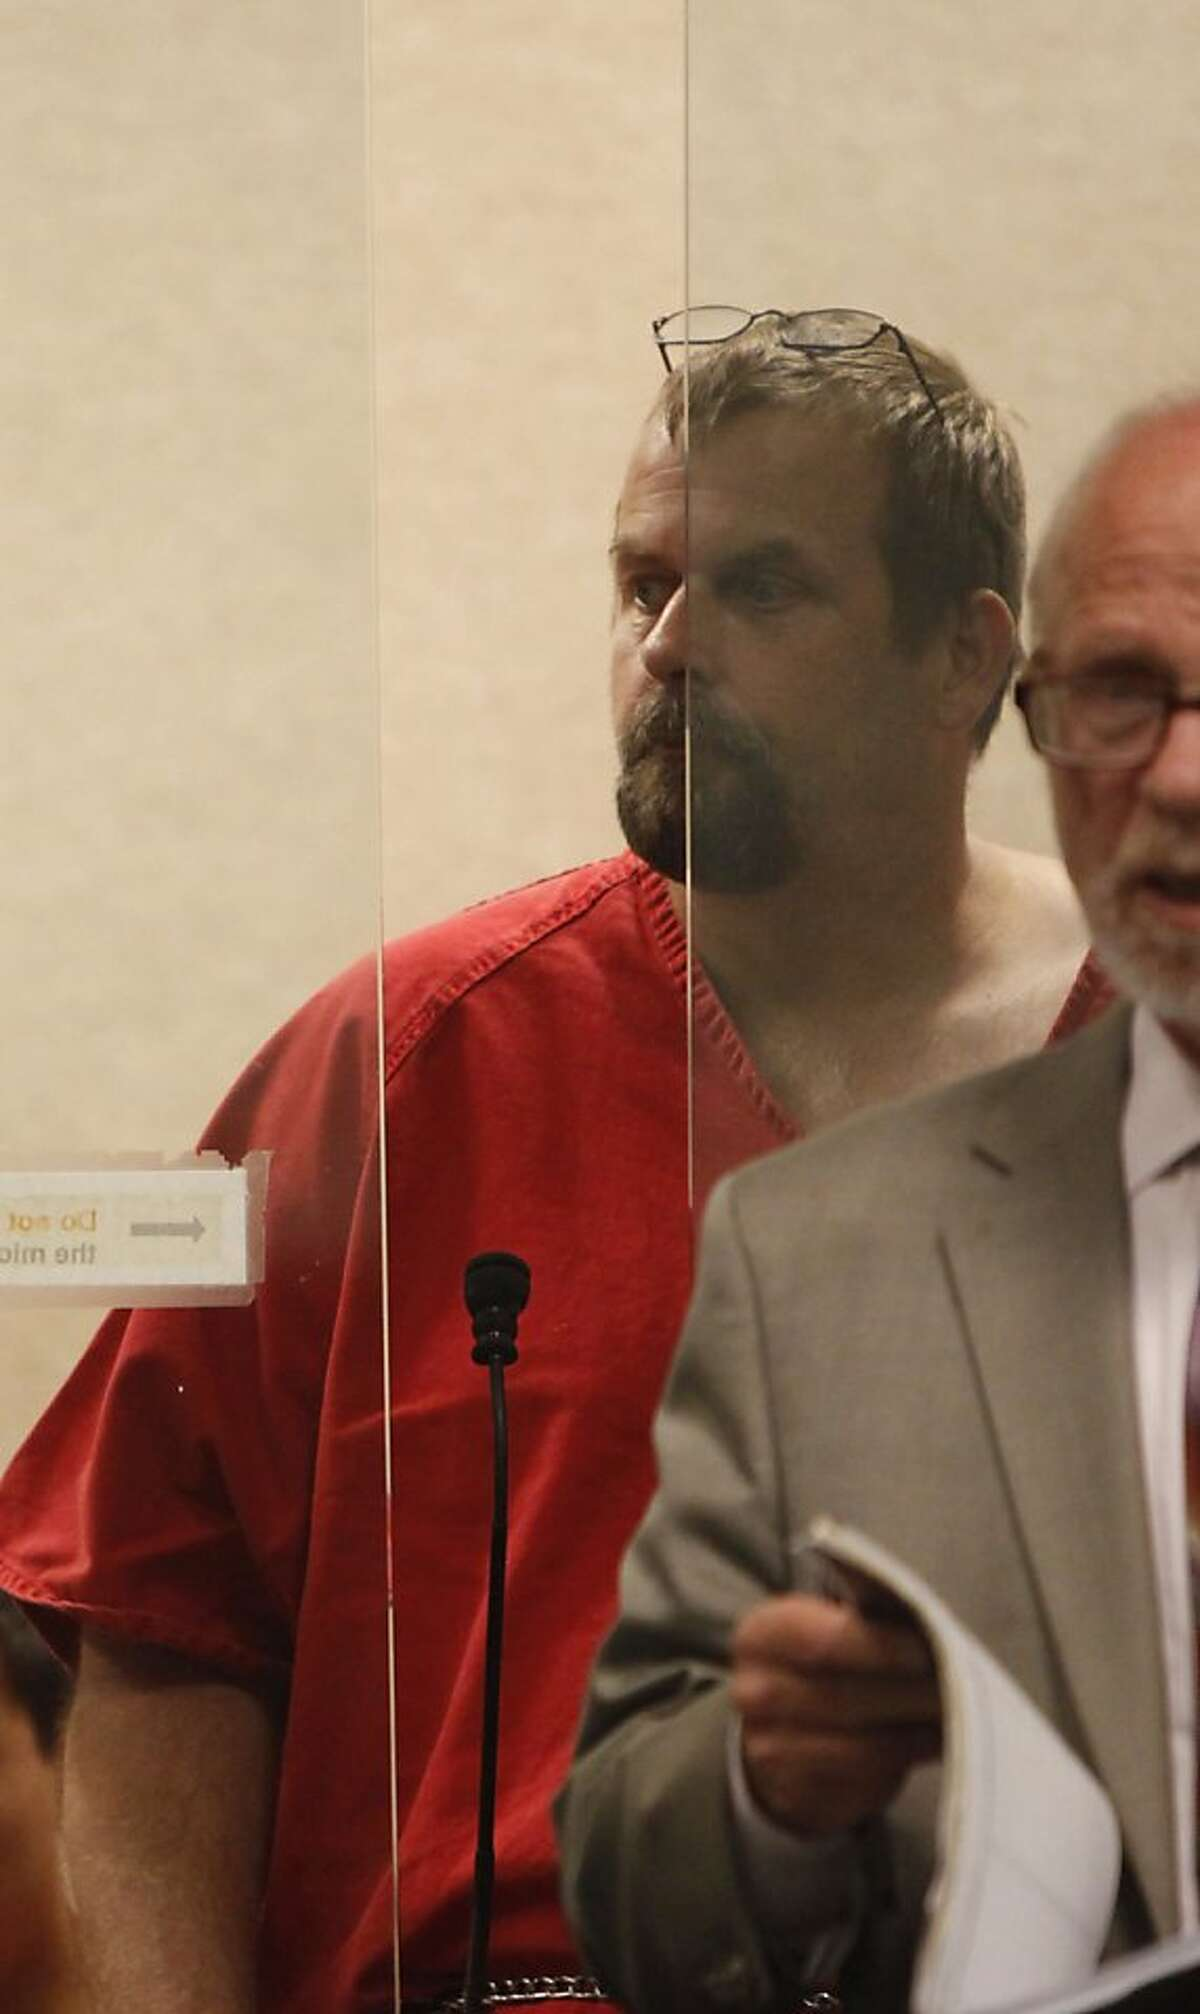 John William Kelley of Placerville makes an appearance in San Mateo County Superior Court on Tuesday, August 28, 2012 in Redwood City, Calif.